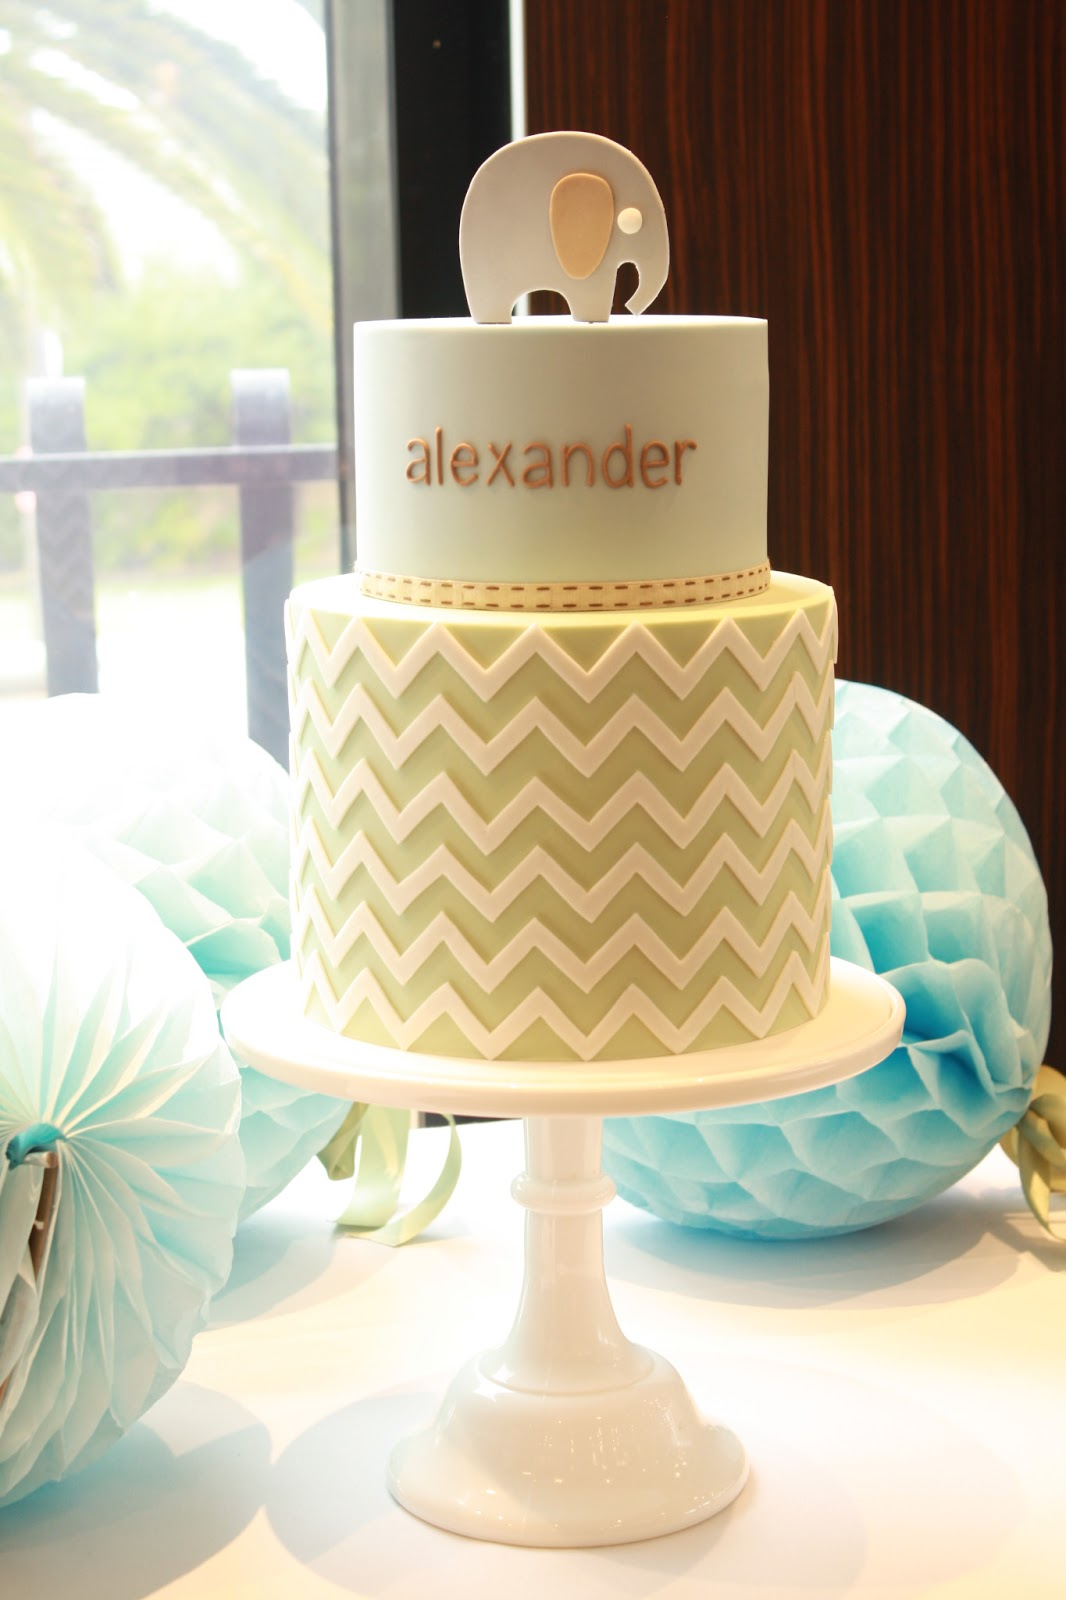 alexander s christening cake a custom designed cake made to match his ...